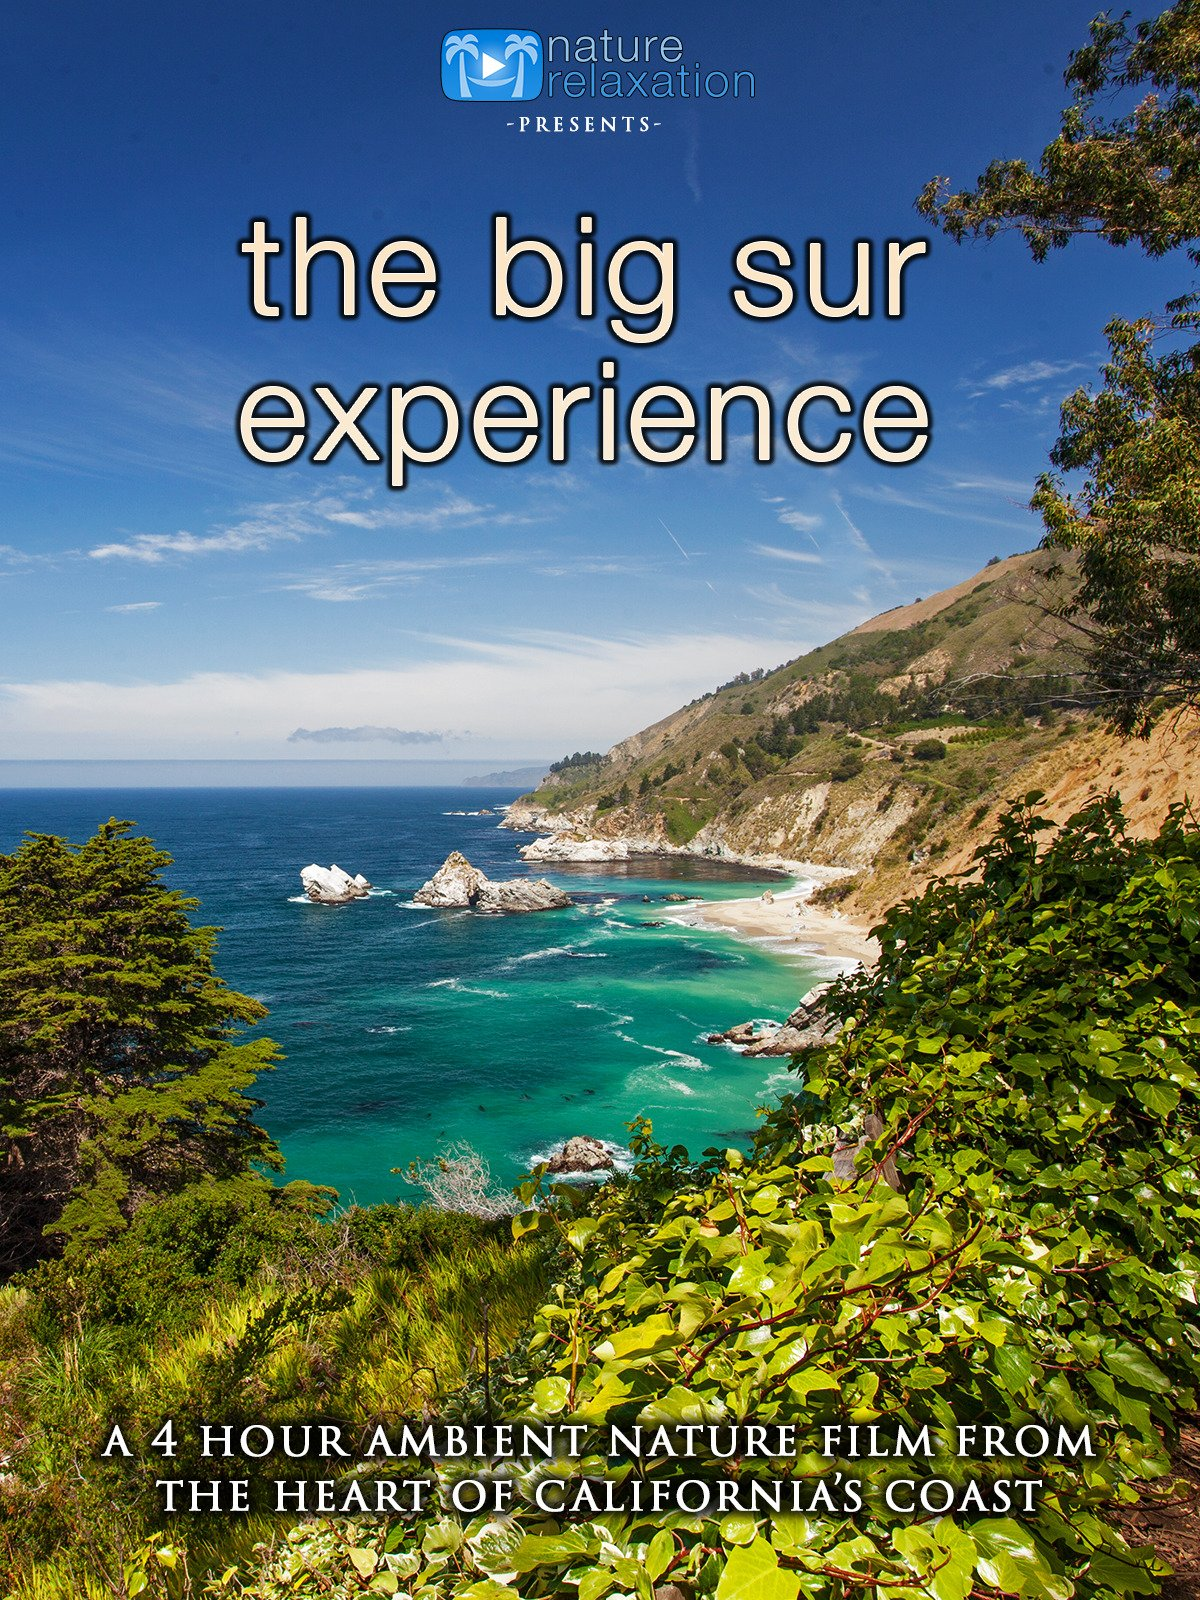 The Big Sur Experience: 4 Hour Ambient Nature Relaxation Film from the Heart of California's Coast